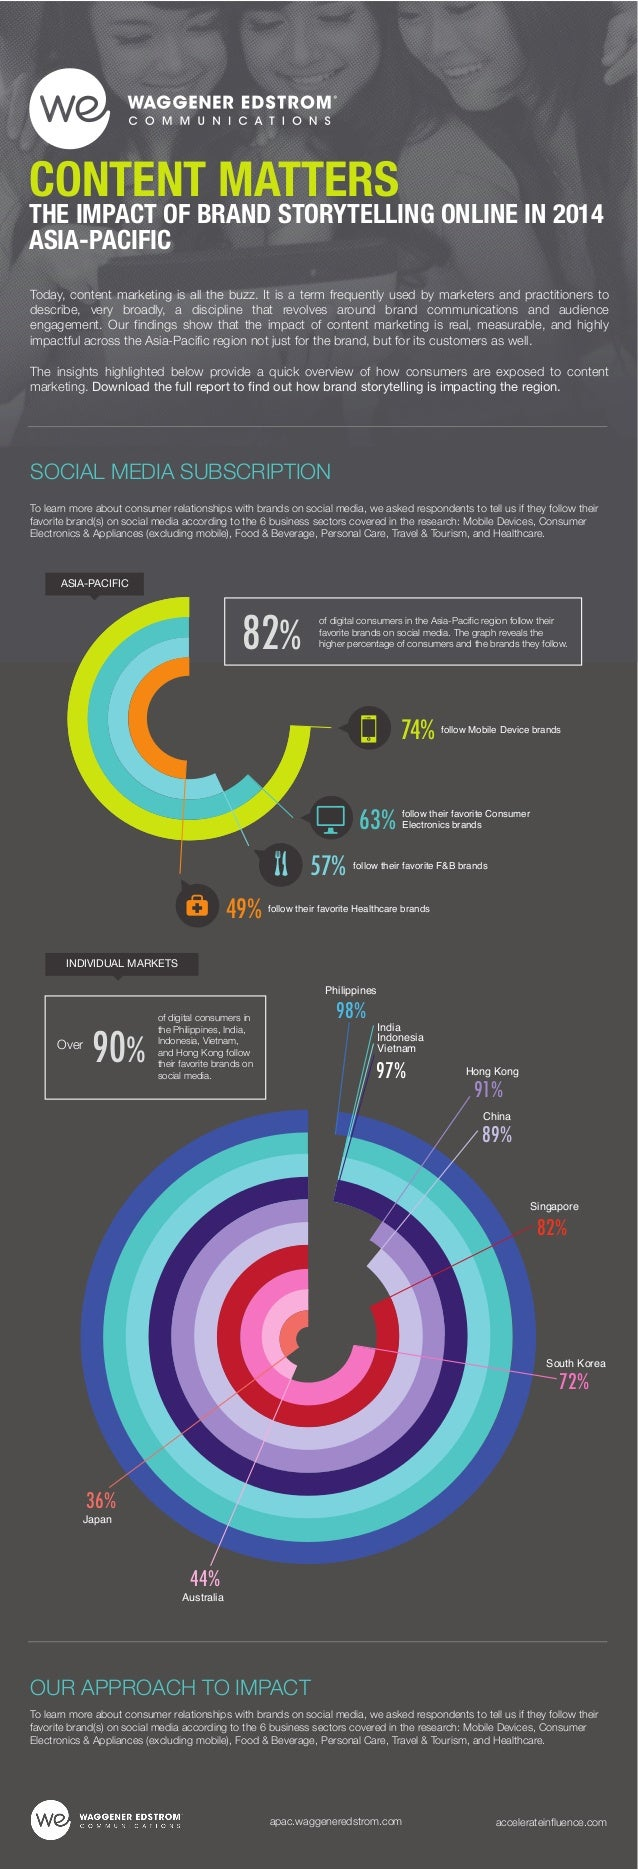 INFOGRAPHIC Social Subscribers CONTENT MATTERS The ROI Impact of Digital Storytelling 2014 - Waggener Edstrom Asia